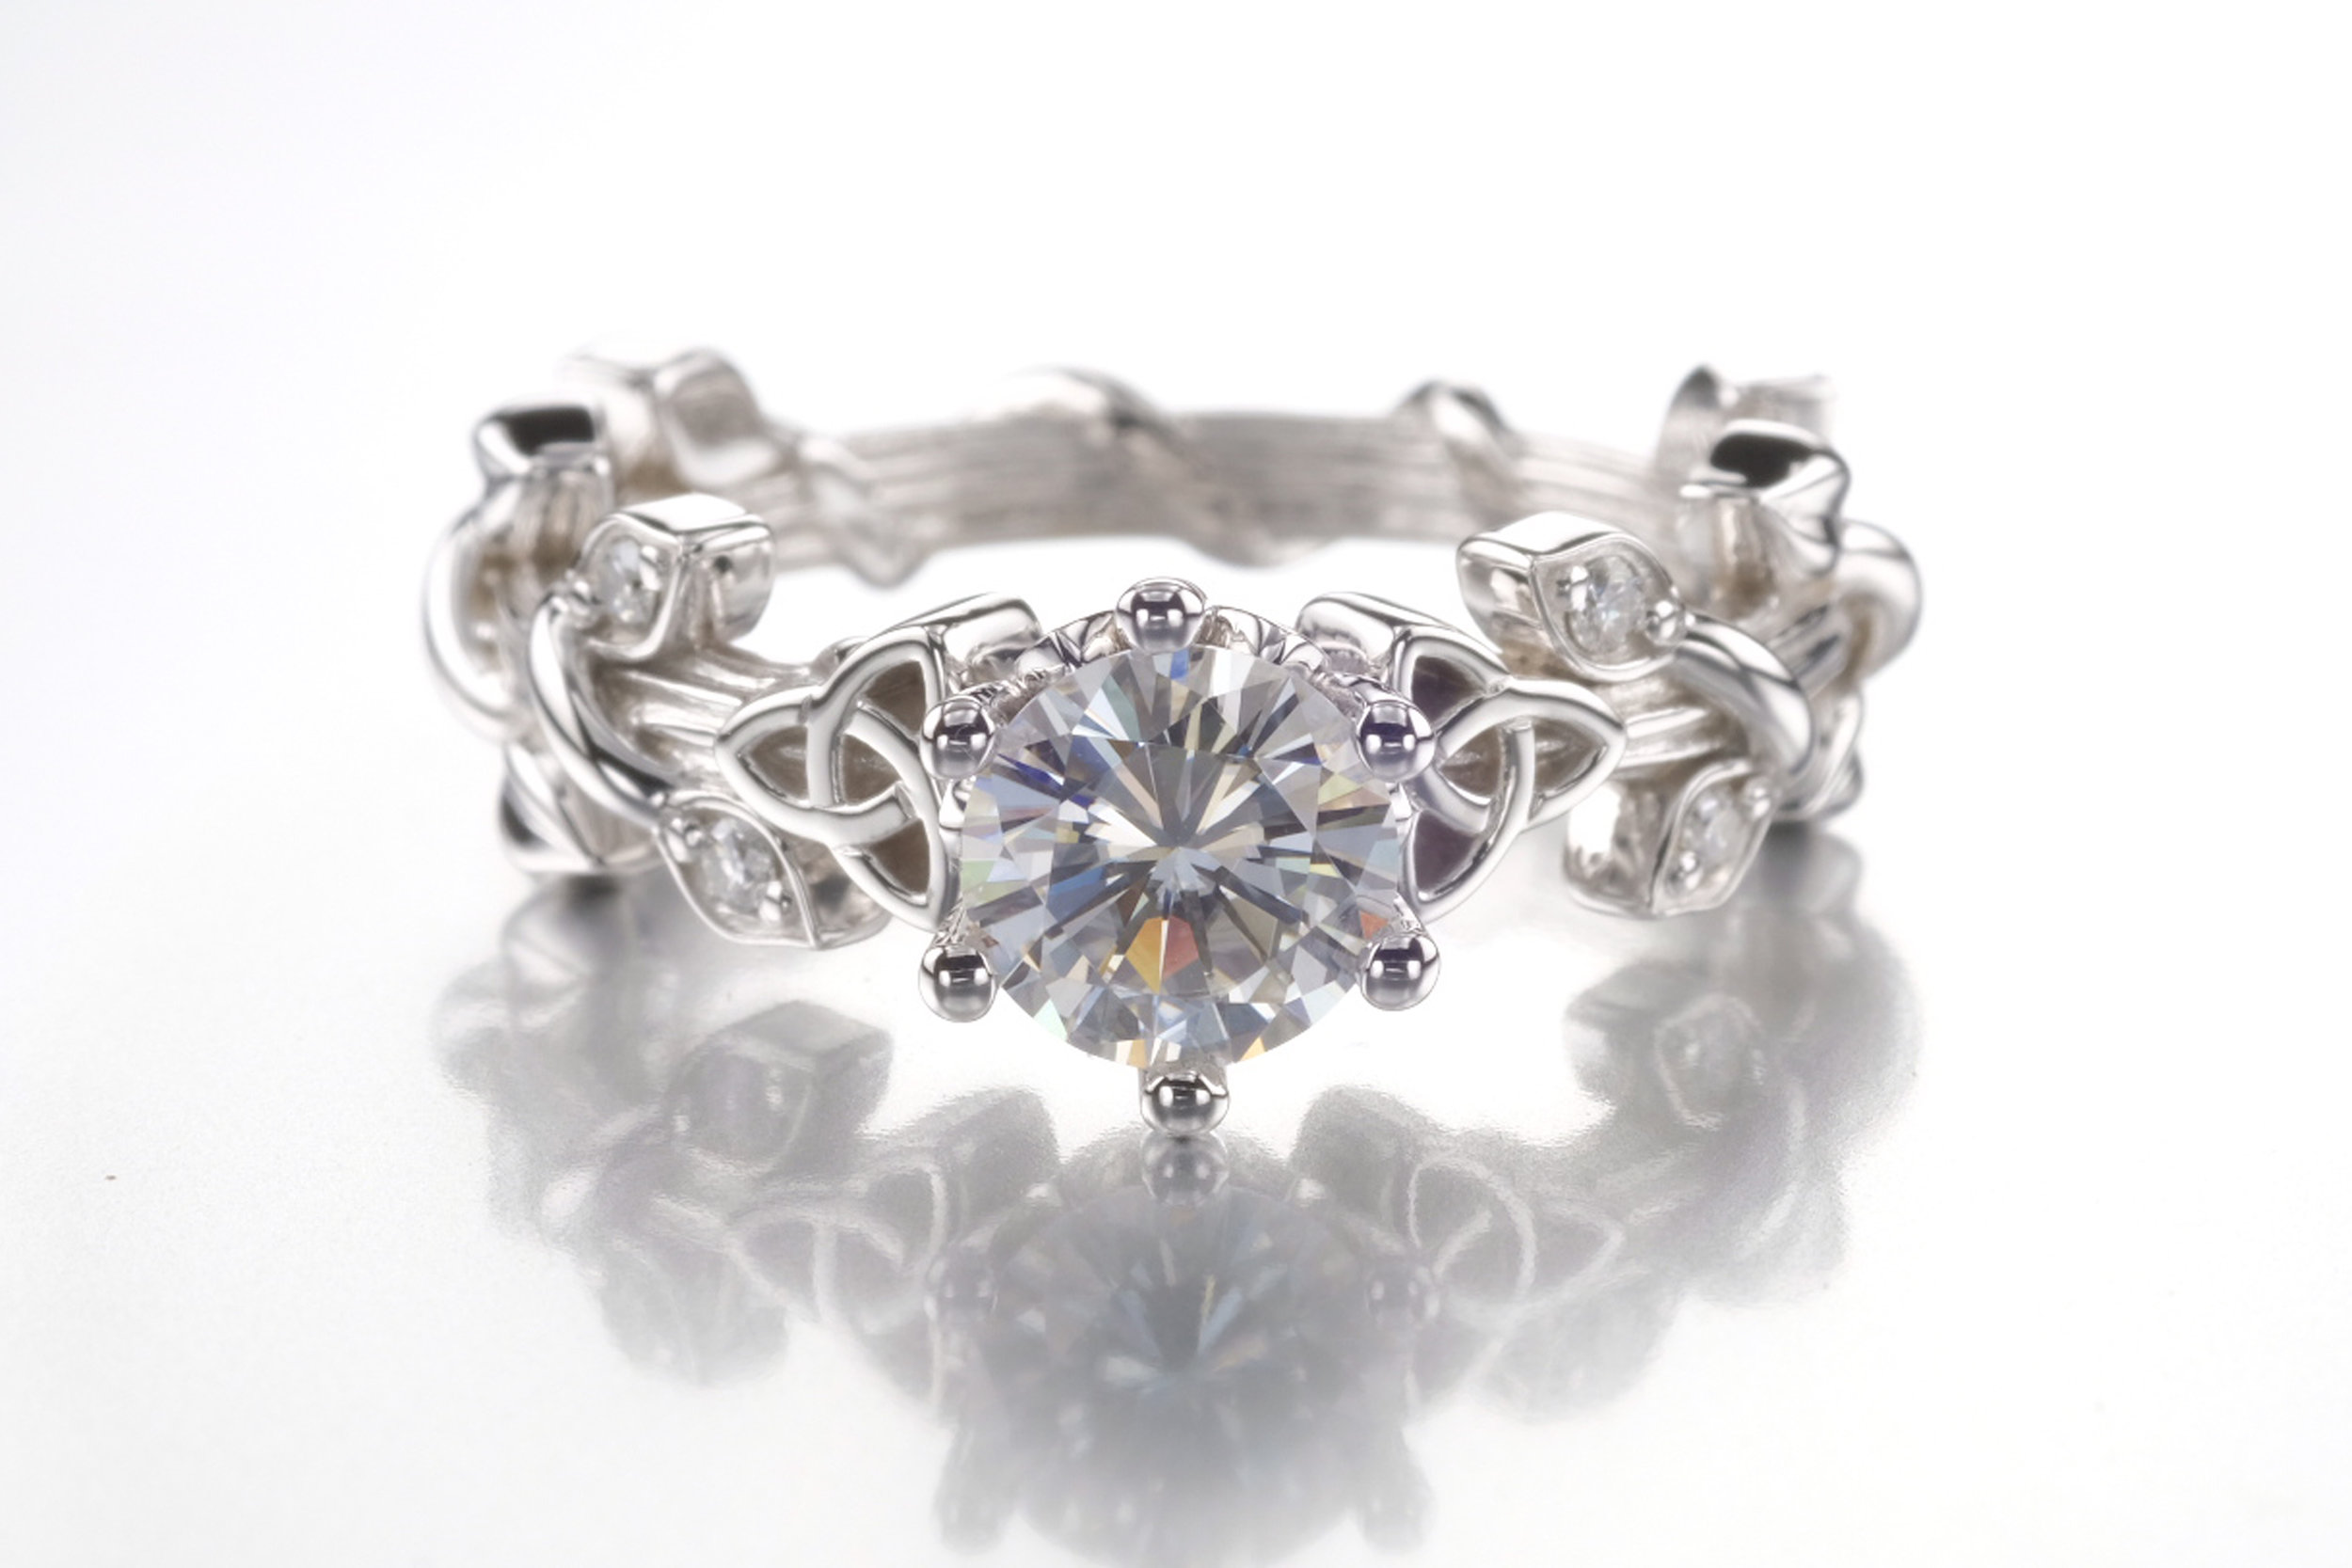 Trinity Diamond Ring 14K White Gold - A vintage-style engagement ring that resulted in an angelic one-of-a-kind ring that embodies elegance.